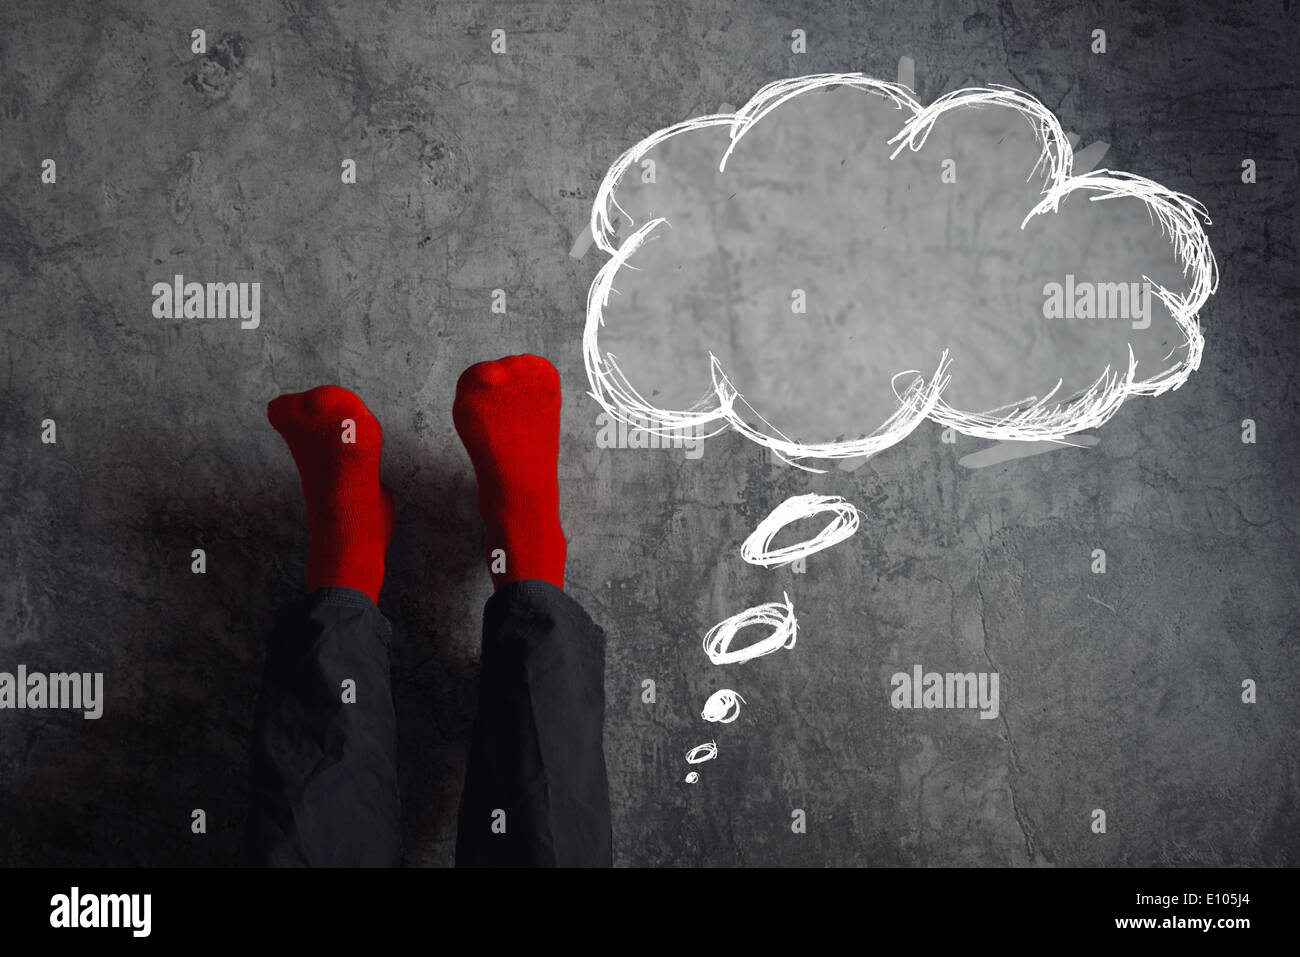 Legs up the wall, putting feet up with think balloon. Man wearing red socks in relaxing yoga pose with his legs on the wall. - Stock Image